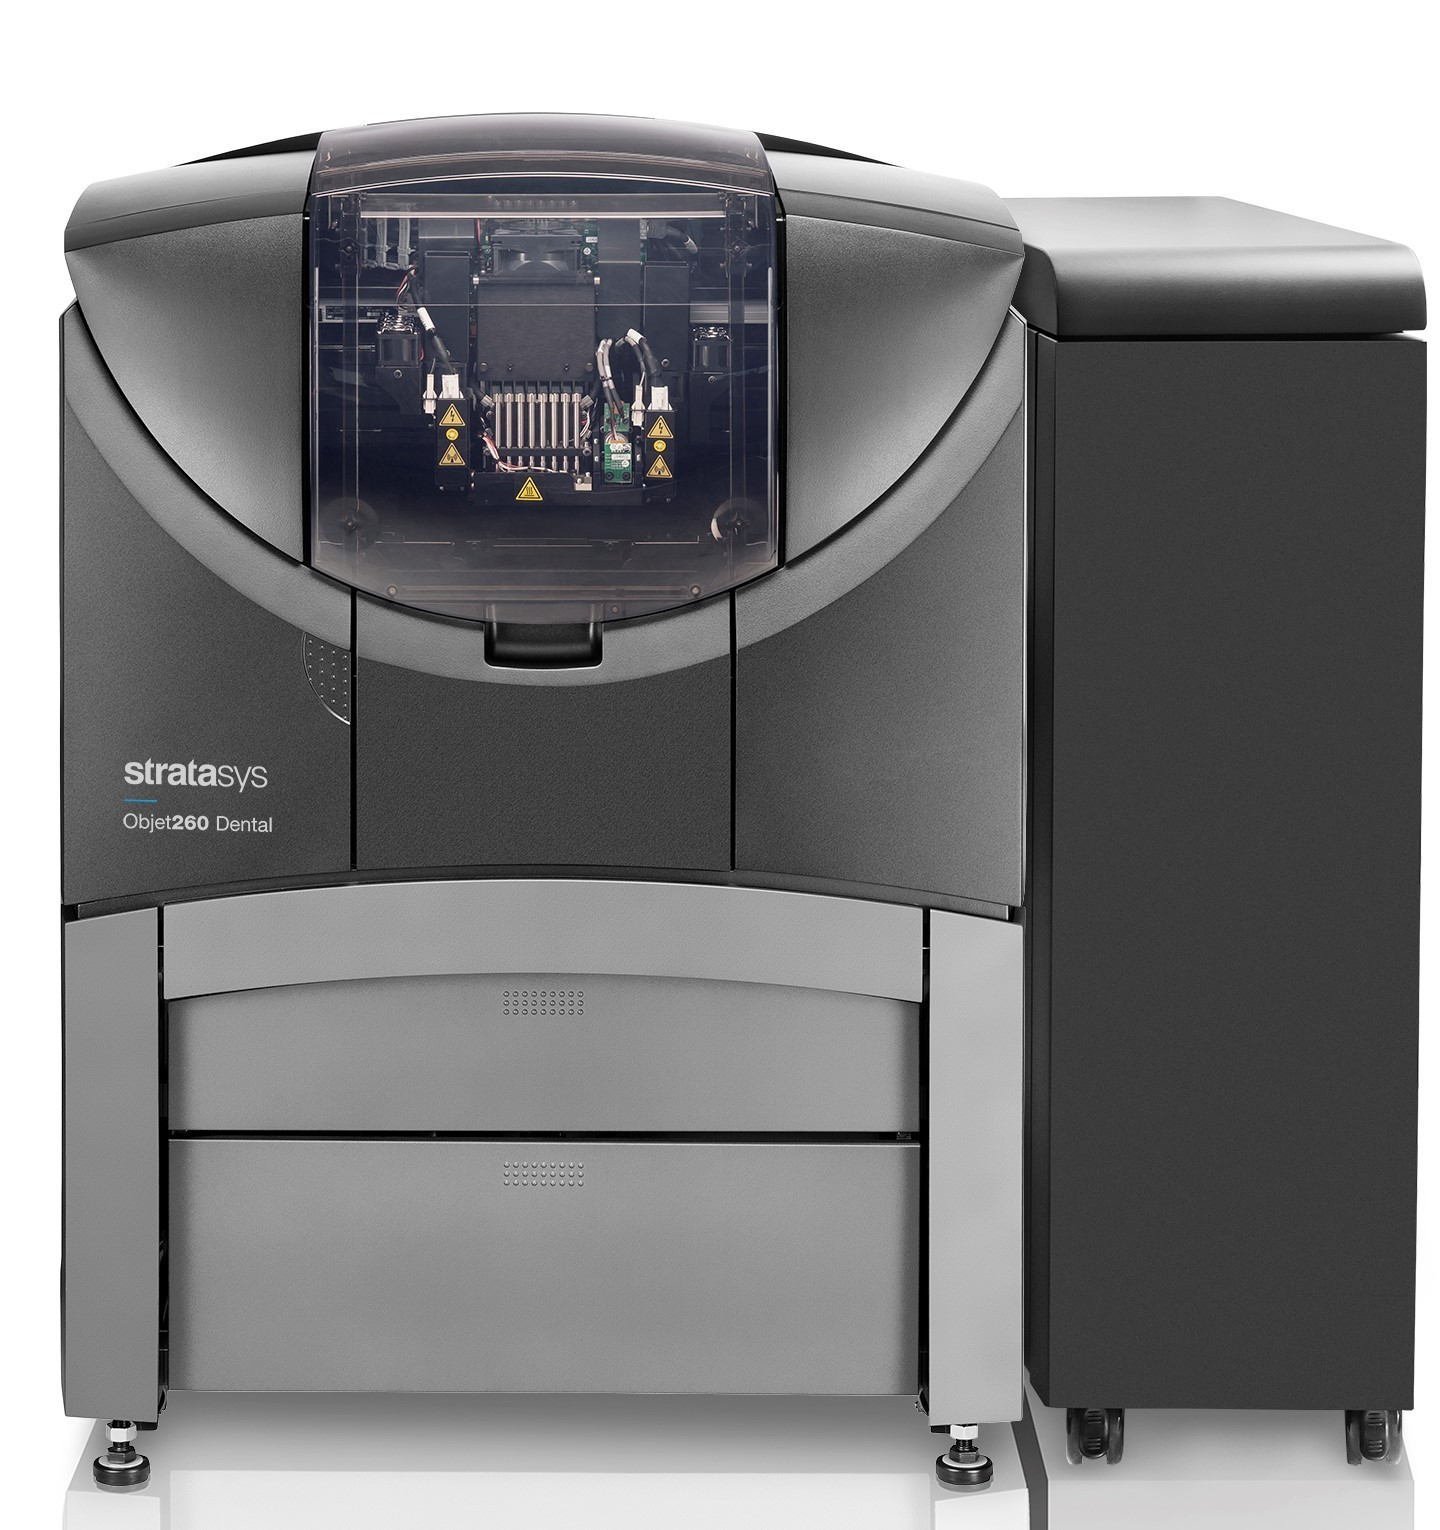 Stratasys Objet260 Dental 3D Printe for digital denstistry